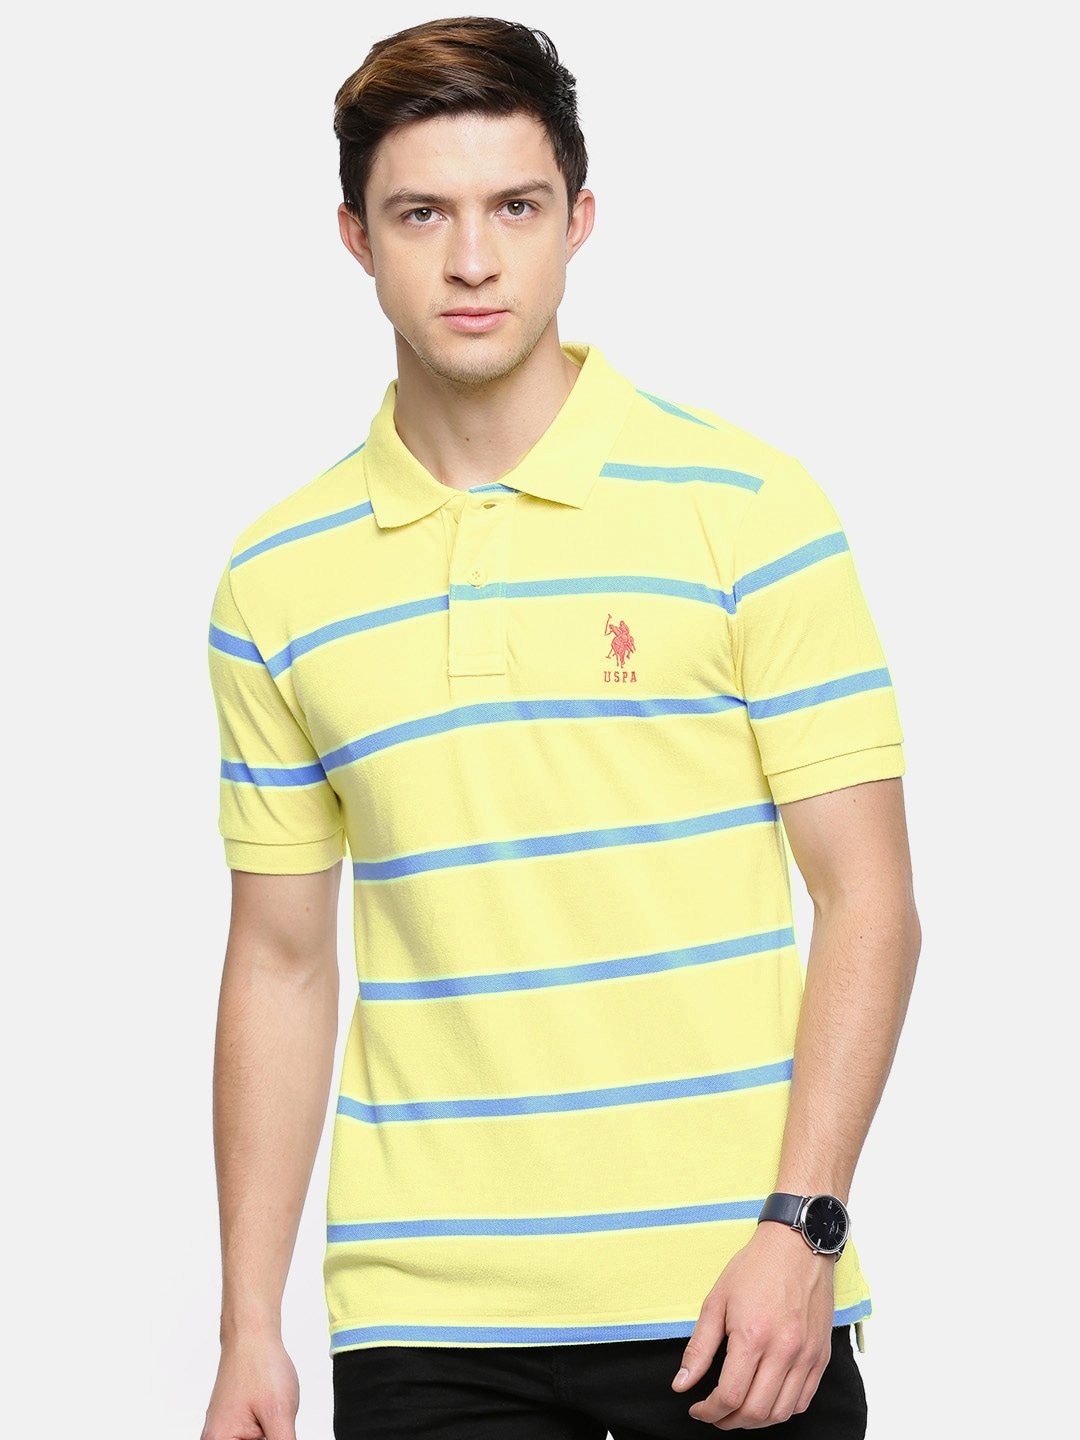 3af845d7803 Yellow Polo Tshirts - Buy Yellow Polo Tshirts online in India